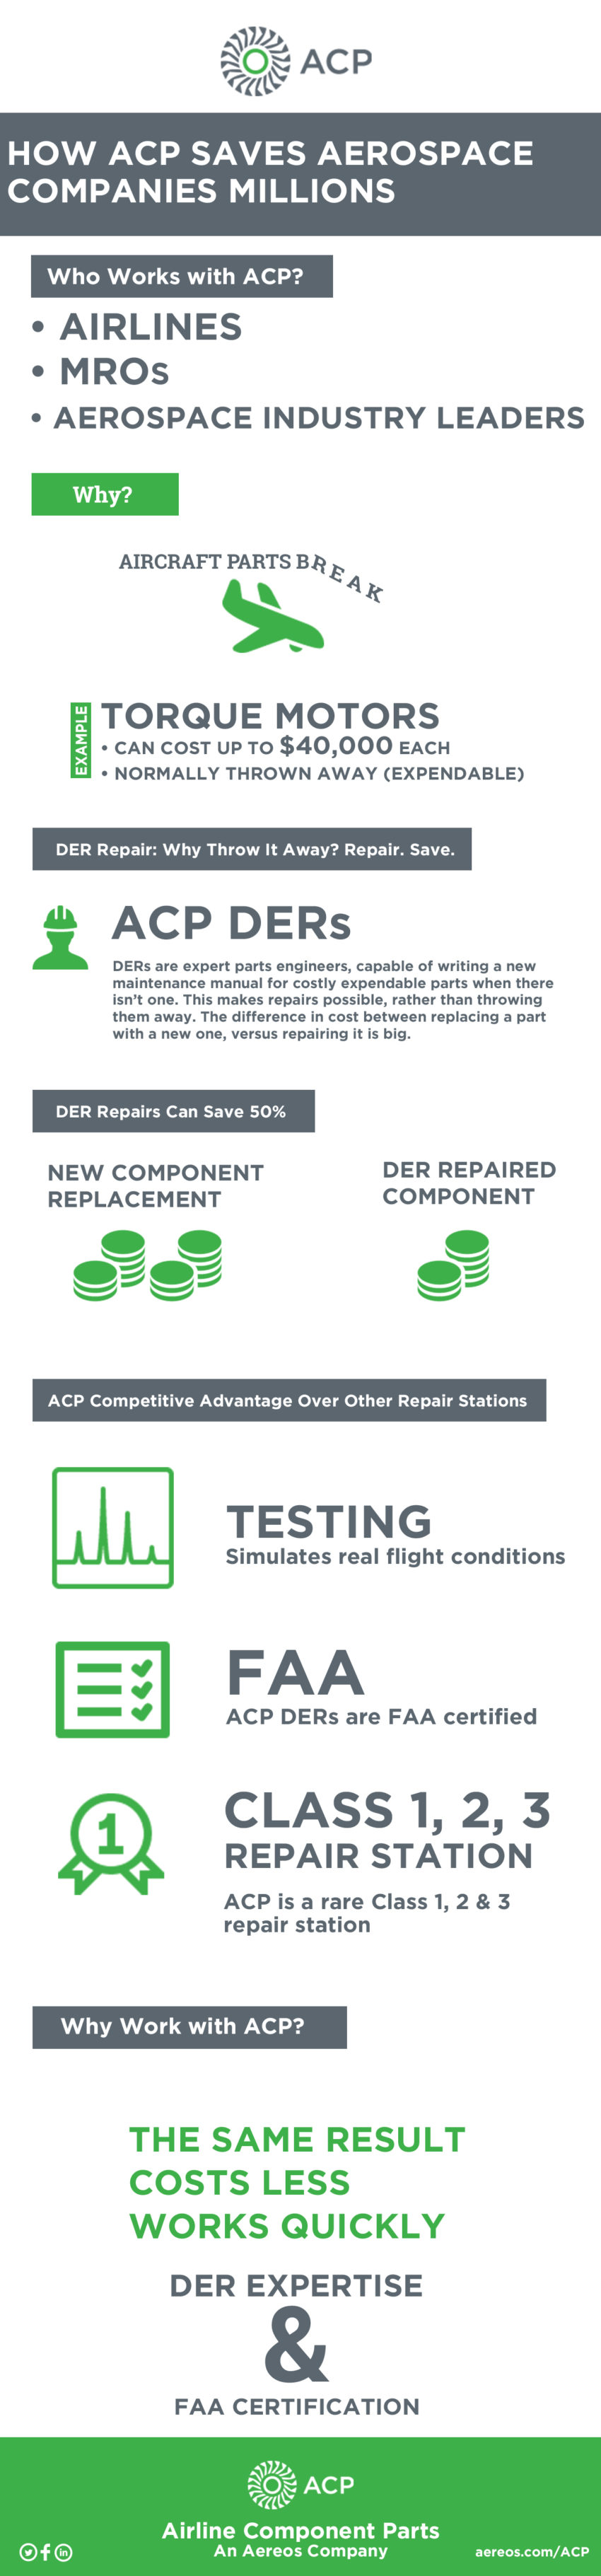 What is a DER Repair - ACP - Airline Component Parts - infographic